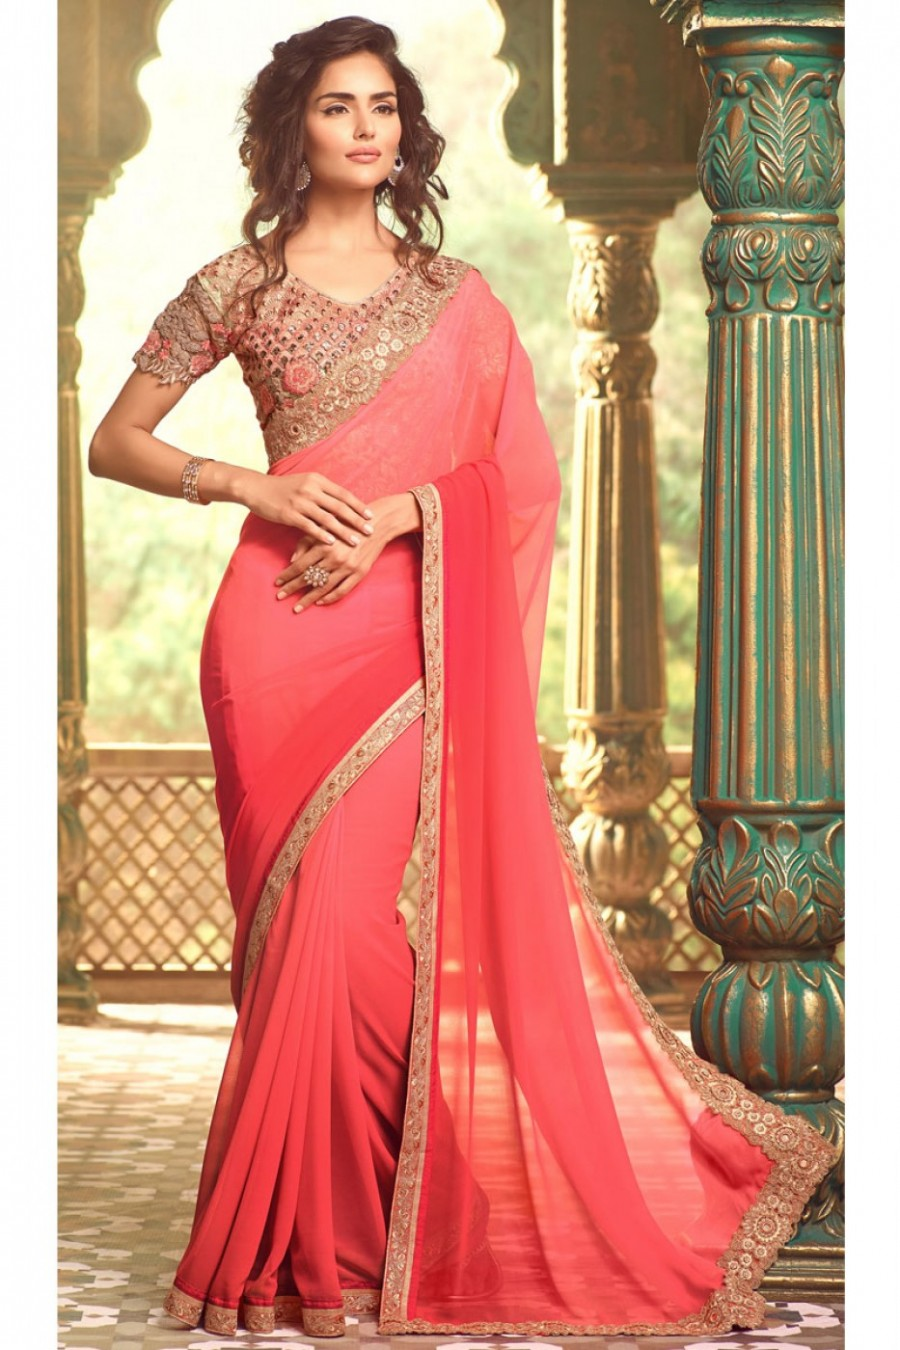 82c0015437e1d4 Buy Cut Work Border Georgette Designer Partywear Saree in Light Pink and  Rose Color with Fancy